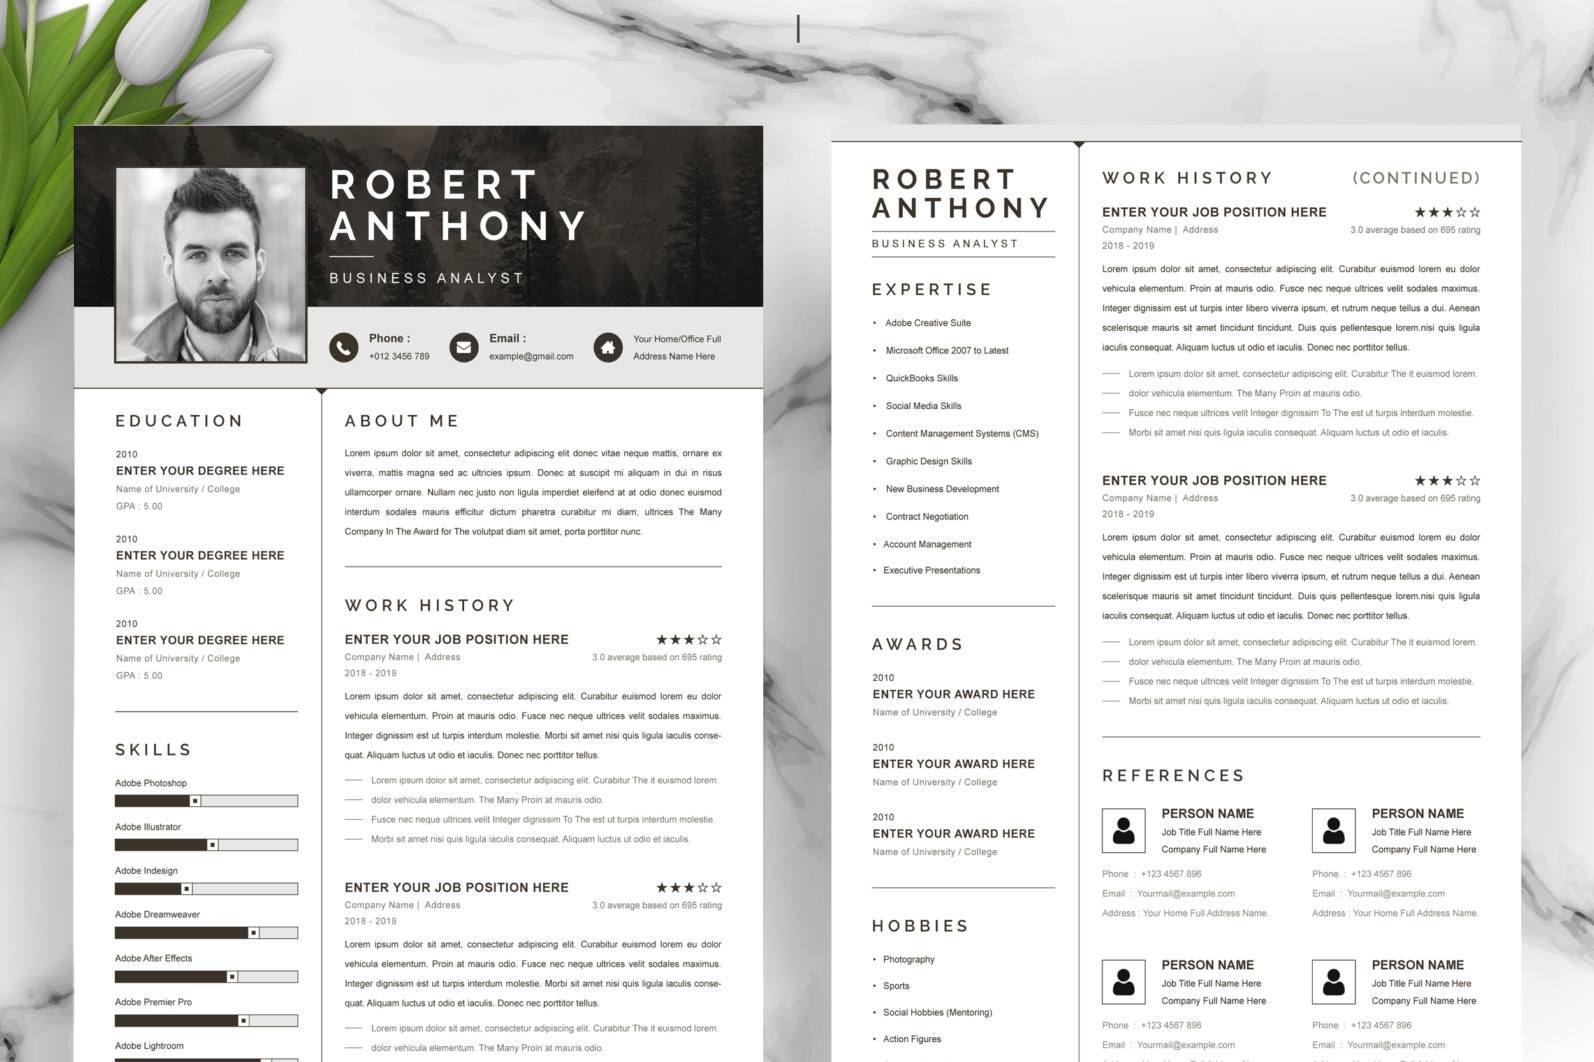 Professional Resume, Instant Download - 02 2 Pages Free Resume Design Template 8 -